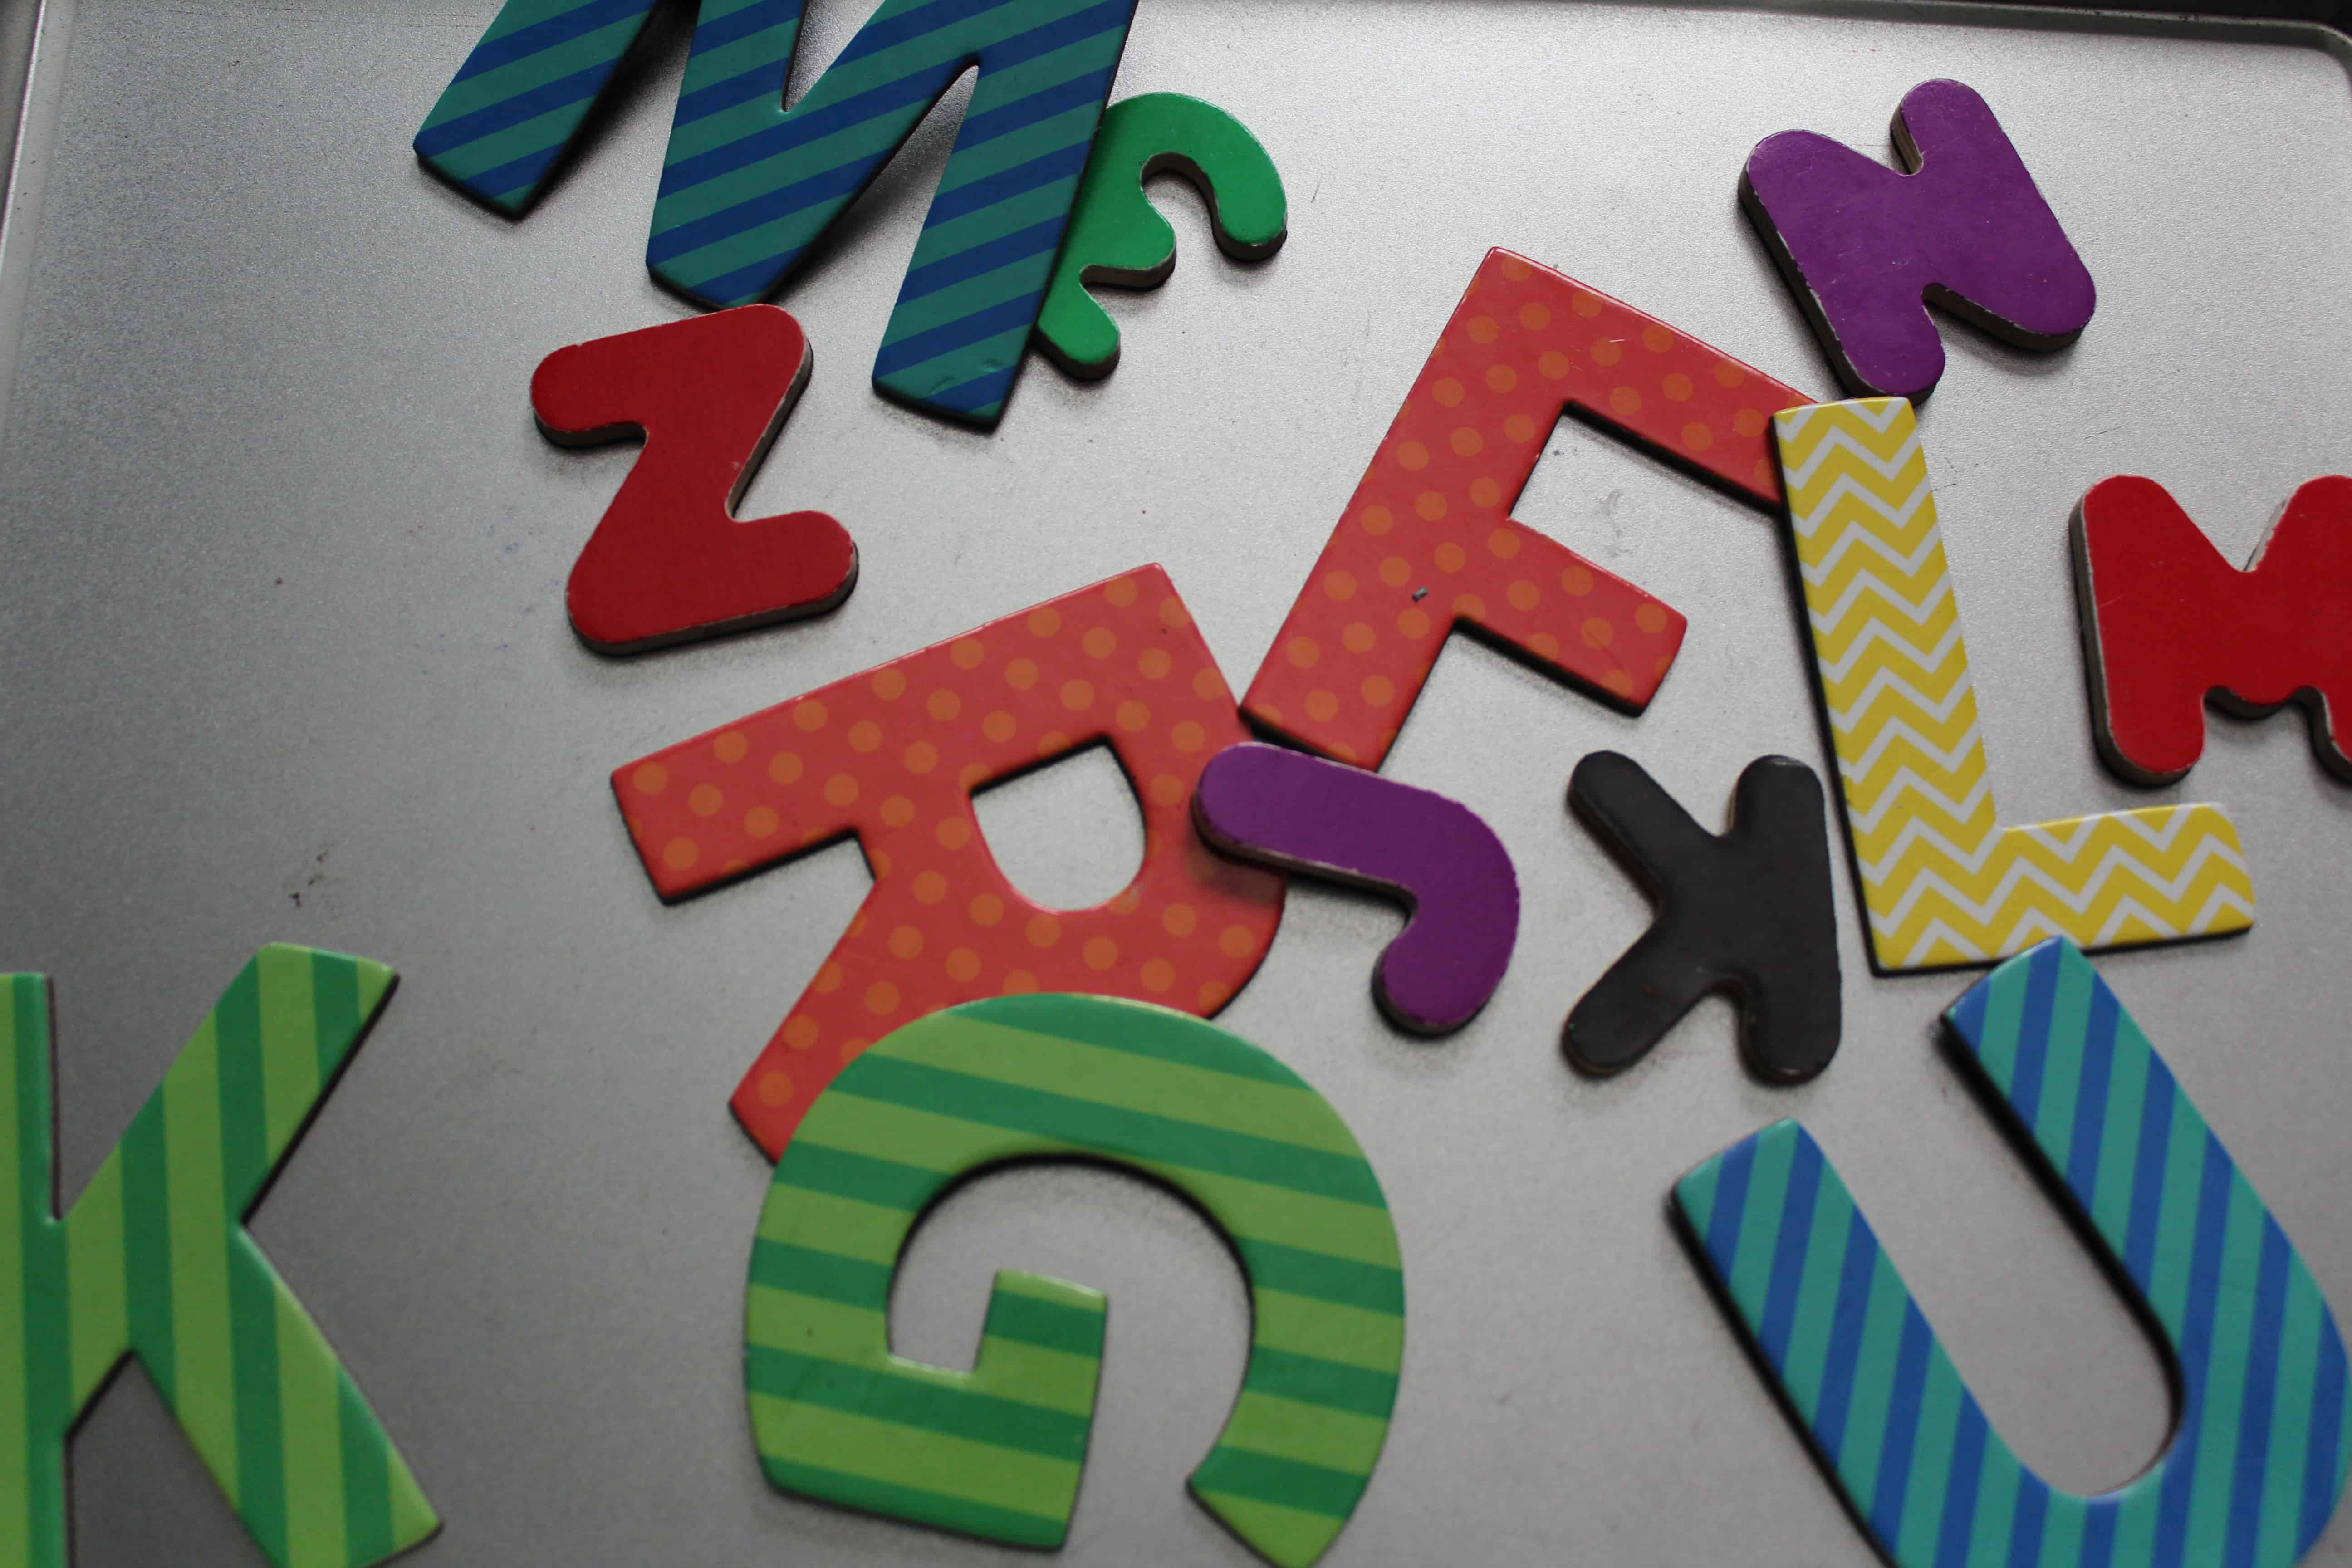 Letter magnet cutouts on a baking sheet